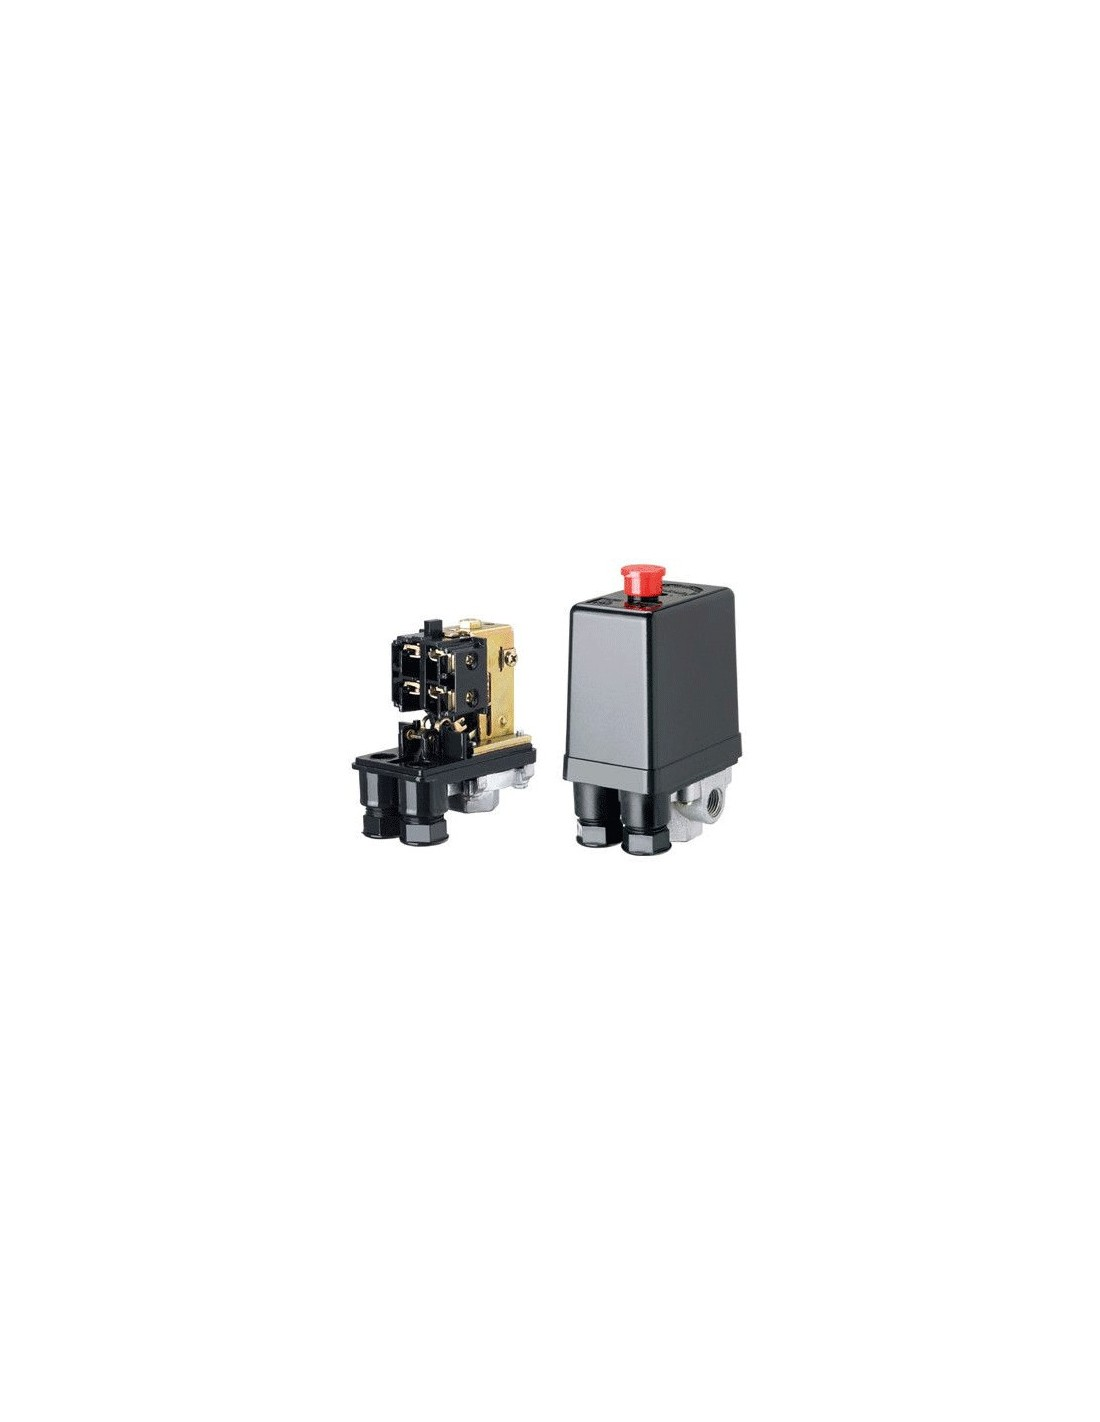 pressure responsive switch 2018 online shopping for popular & hot pressure switch from home improvement, switches, pneumatic parts discover over 18565 of the best selection pressure switch on aliexpresscom.